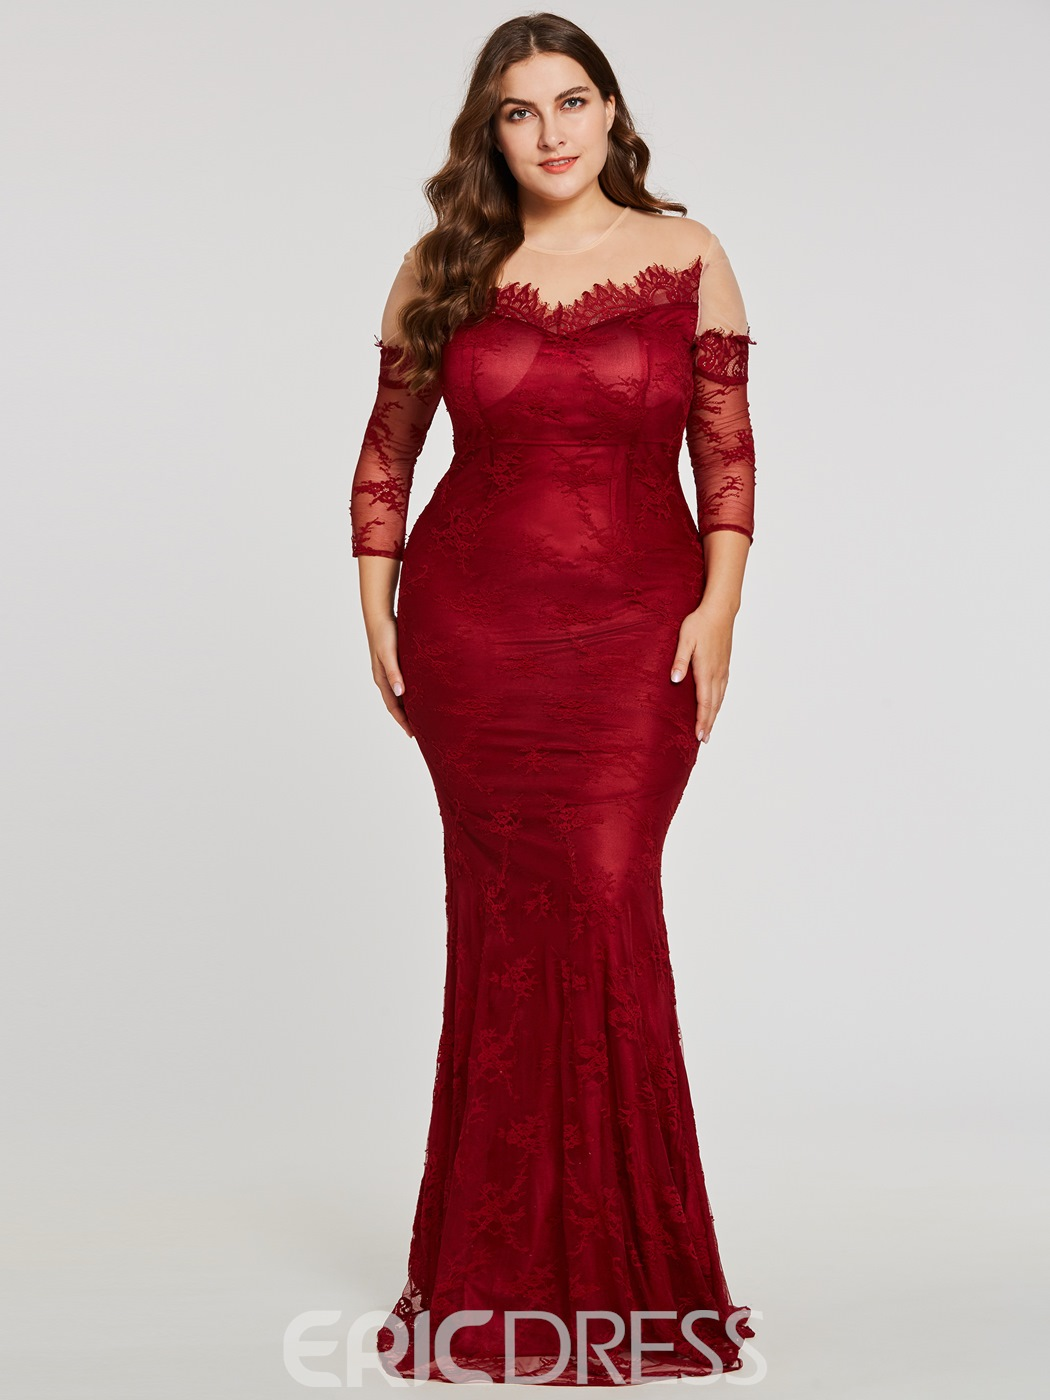 Ericdress Long Sleeves Plus Size Mermaid Evening Dress 13084791 ...